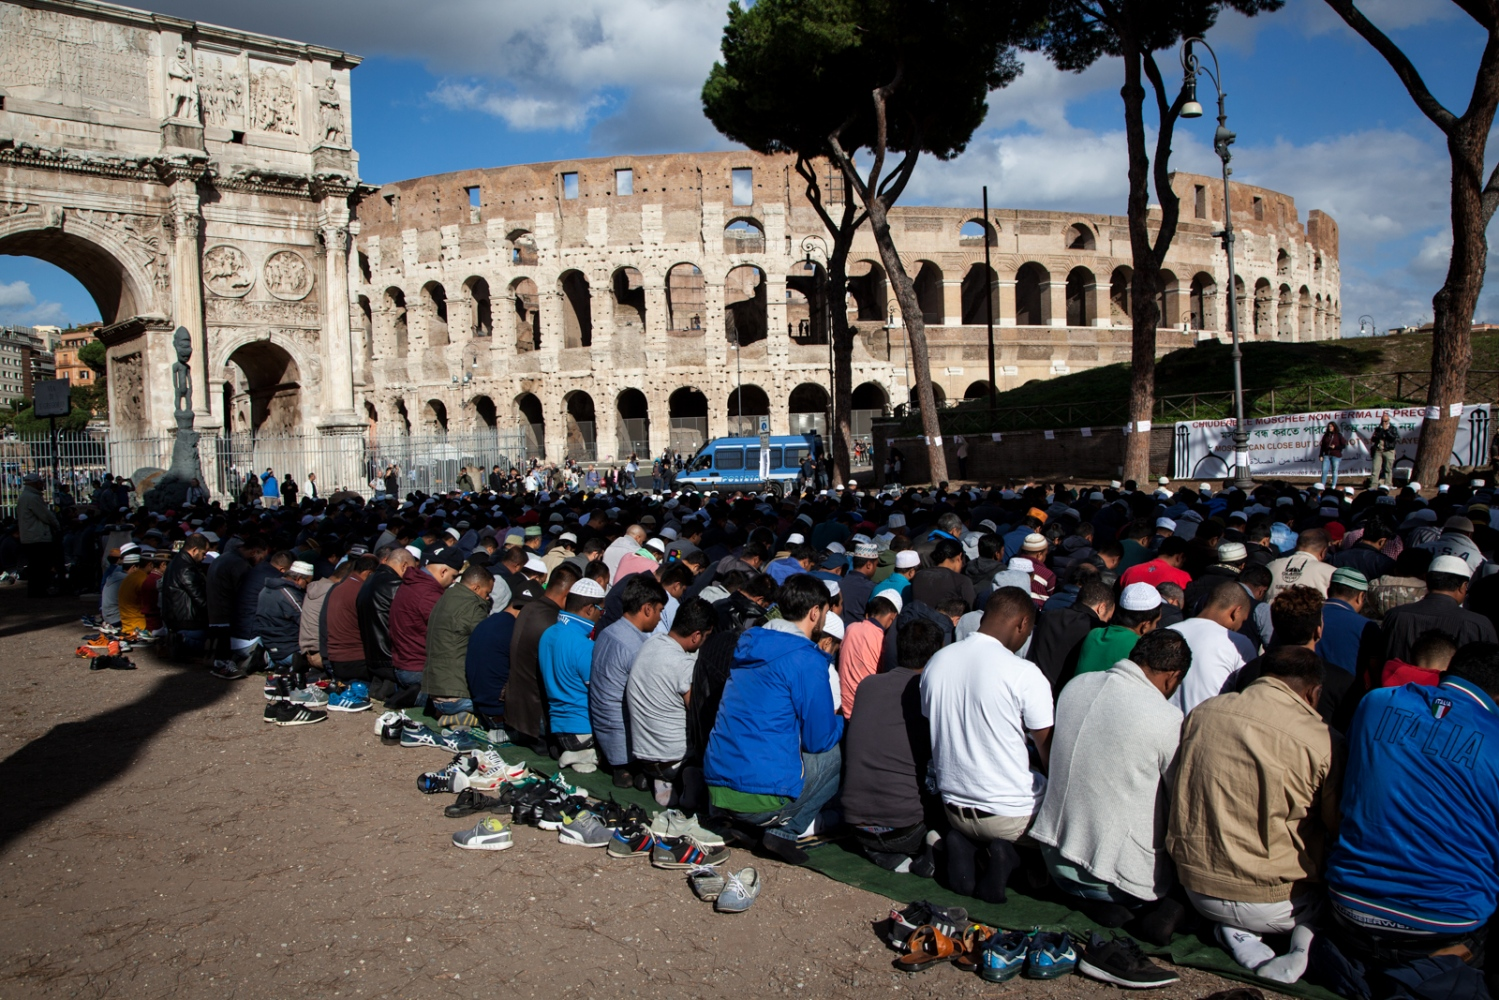 Oct. 21, 2016 - Hundreds of members of the Muslim community of Rome are gathered for the Friday communal prayer in front of the Colosseum, in Rome, to protest against the closure of a few mosque in the southeastern part of the city.